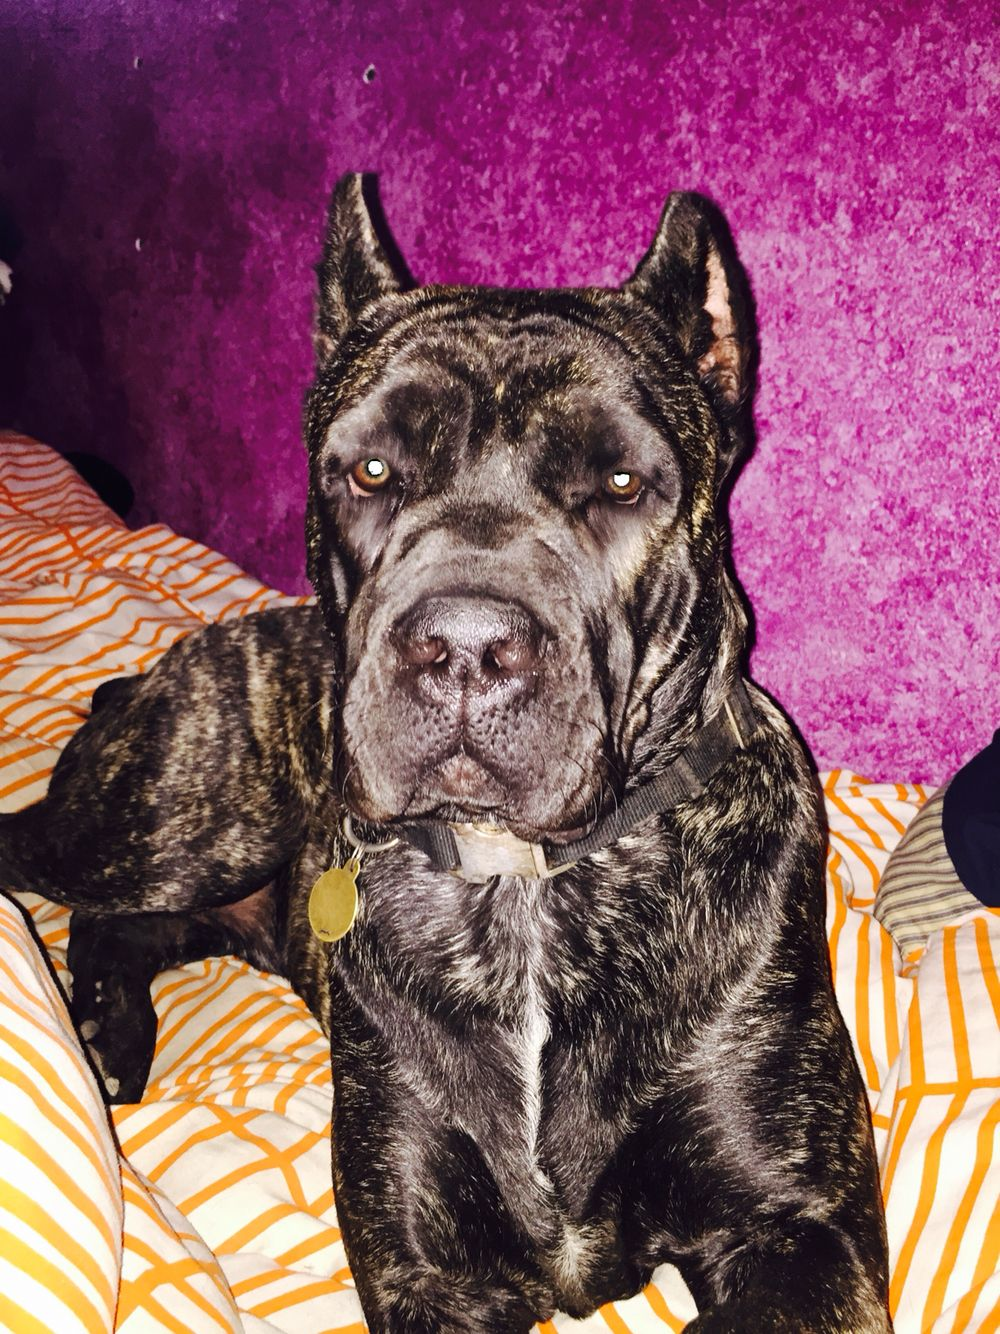 James 10 months   Dogs, puppies, Cane corso, Animals